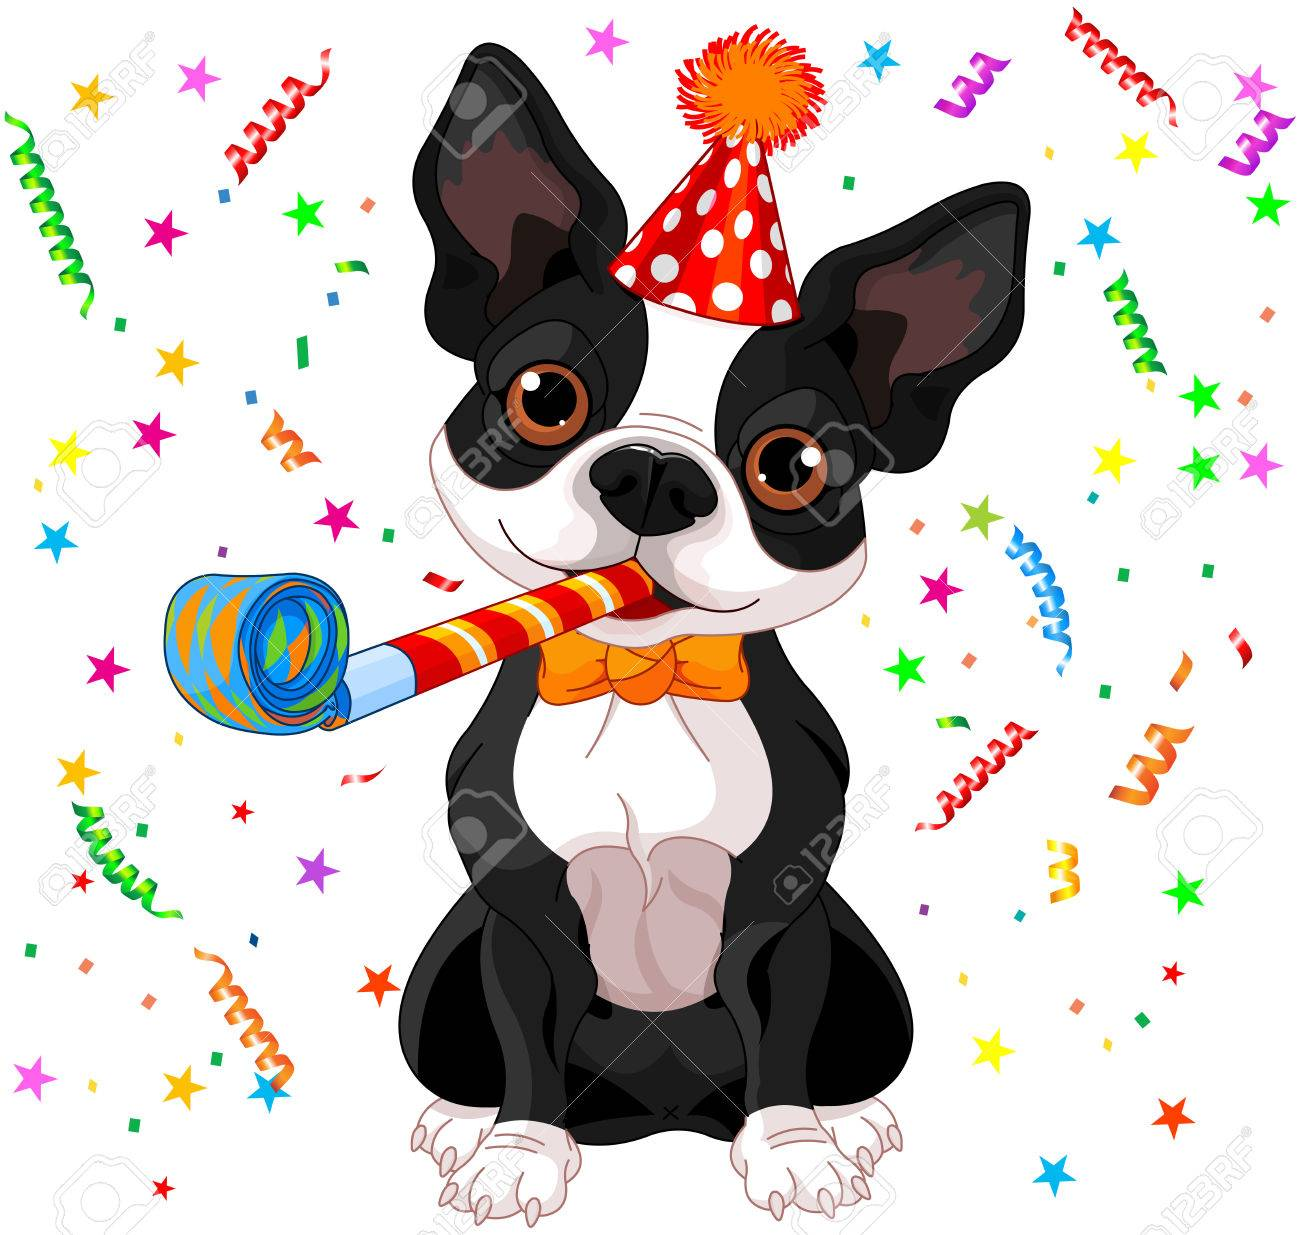 A propos de la socialisation et de la vaccination chez le chiot - Page 3 35588778-illustration-of-cute-boston-terrier-celebrating